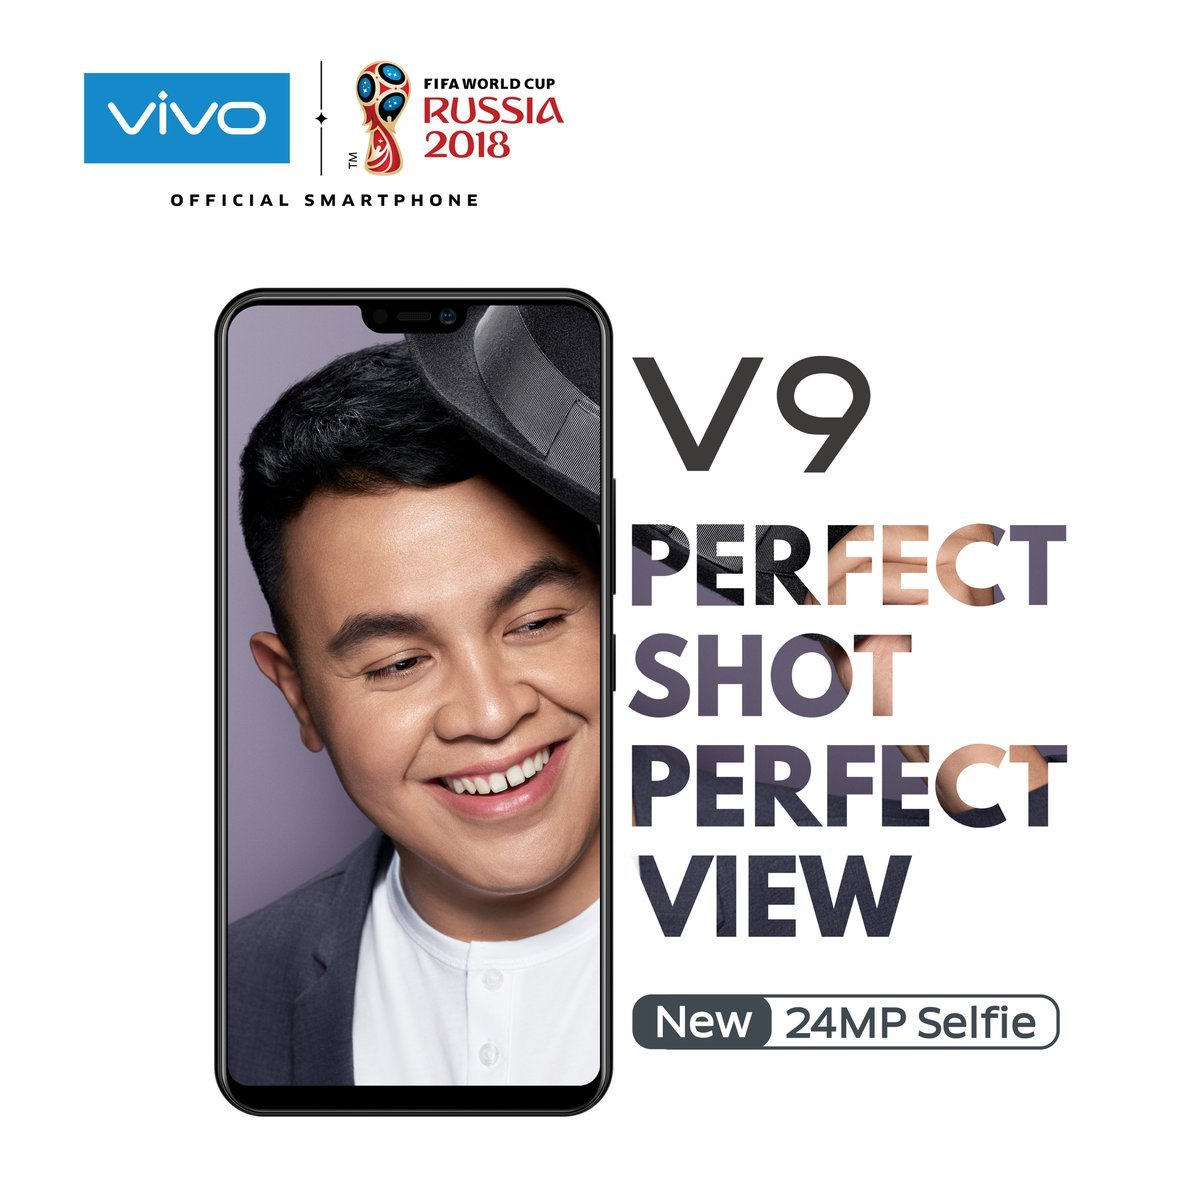 3 Exclusive: Vivo V9 Retail box and real images leak ahead of official launch 4